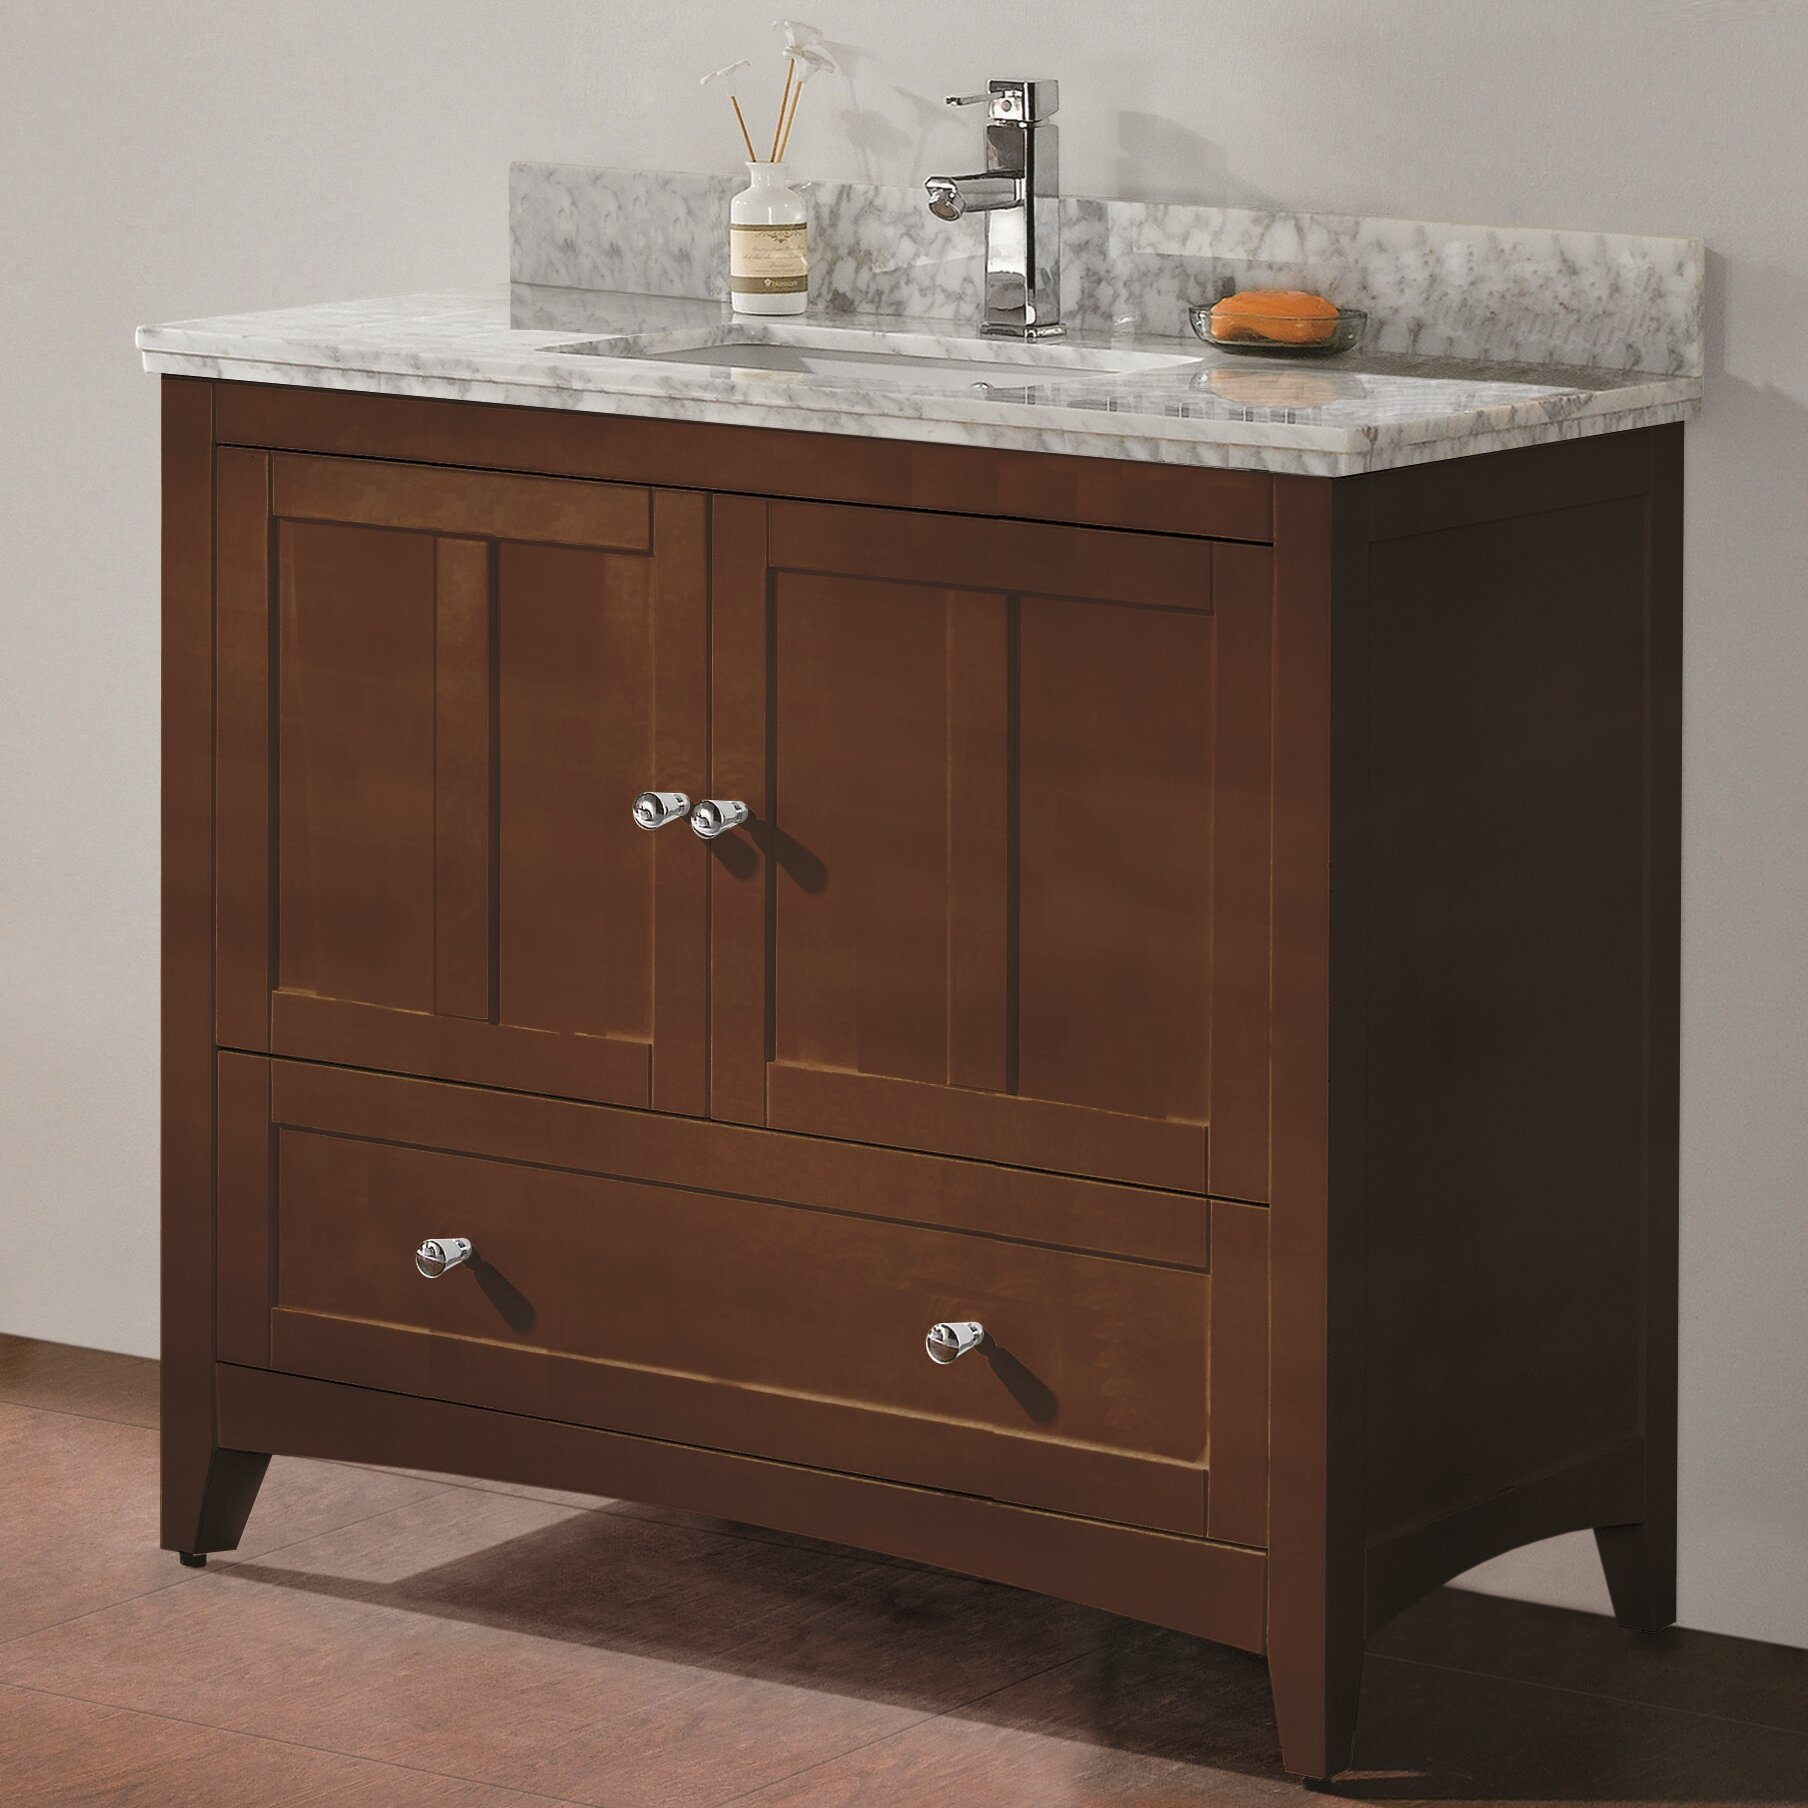 Bathroom vanities made in america bathroom vanities made in usa bathroom ideas made in the Bathroom cabinets made in usa